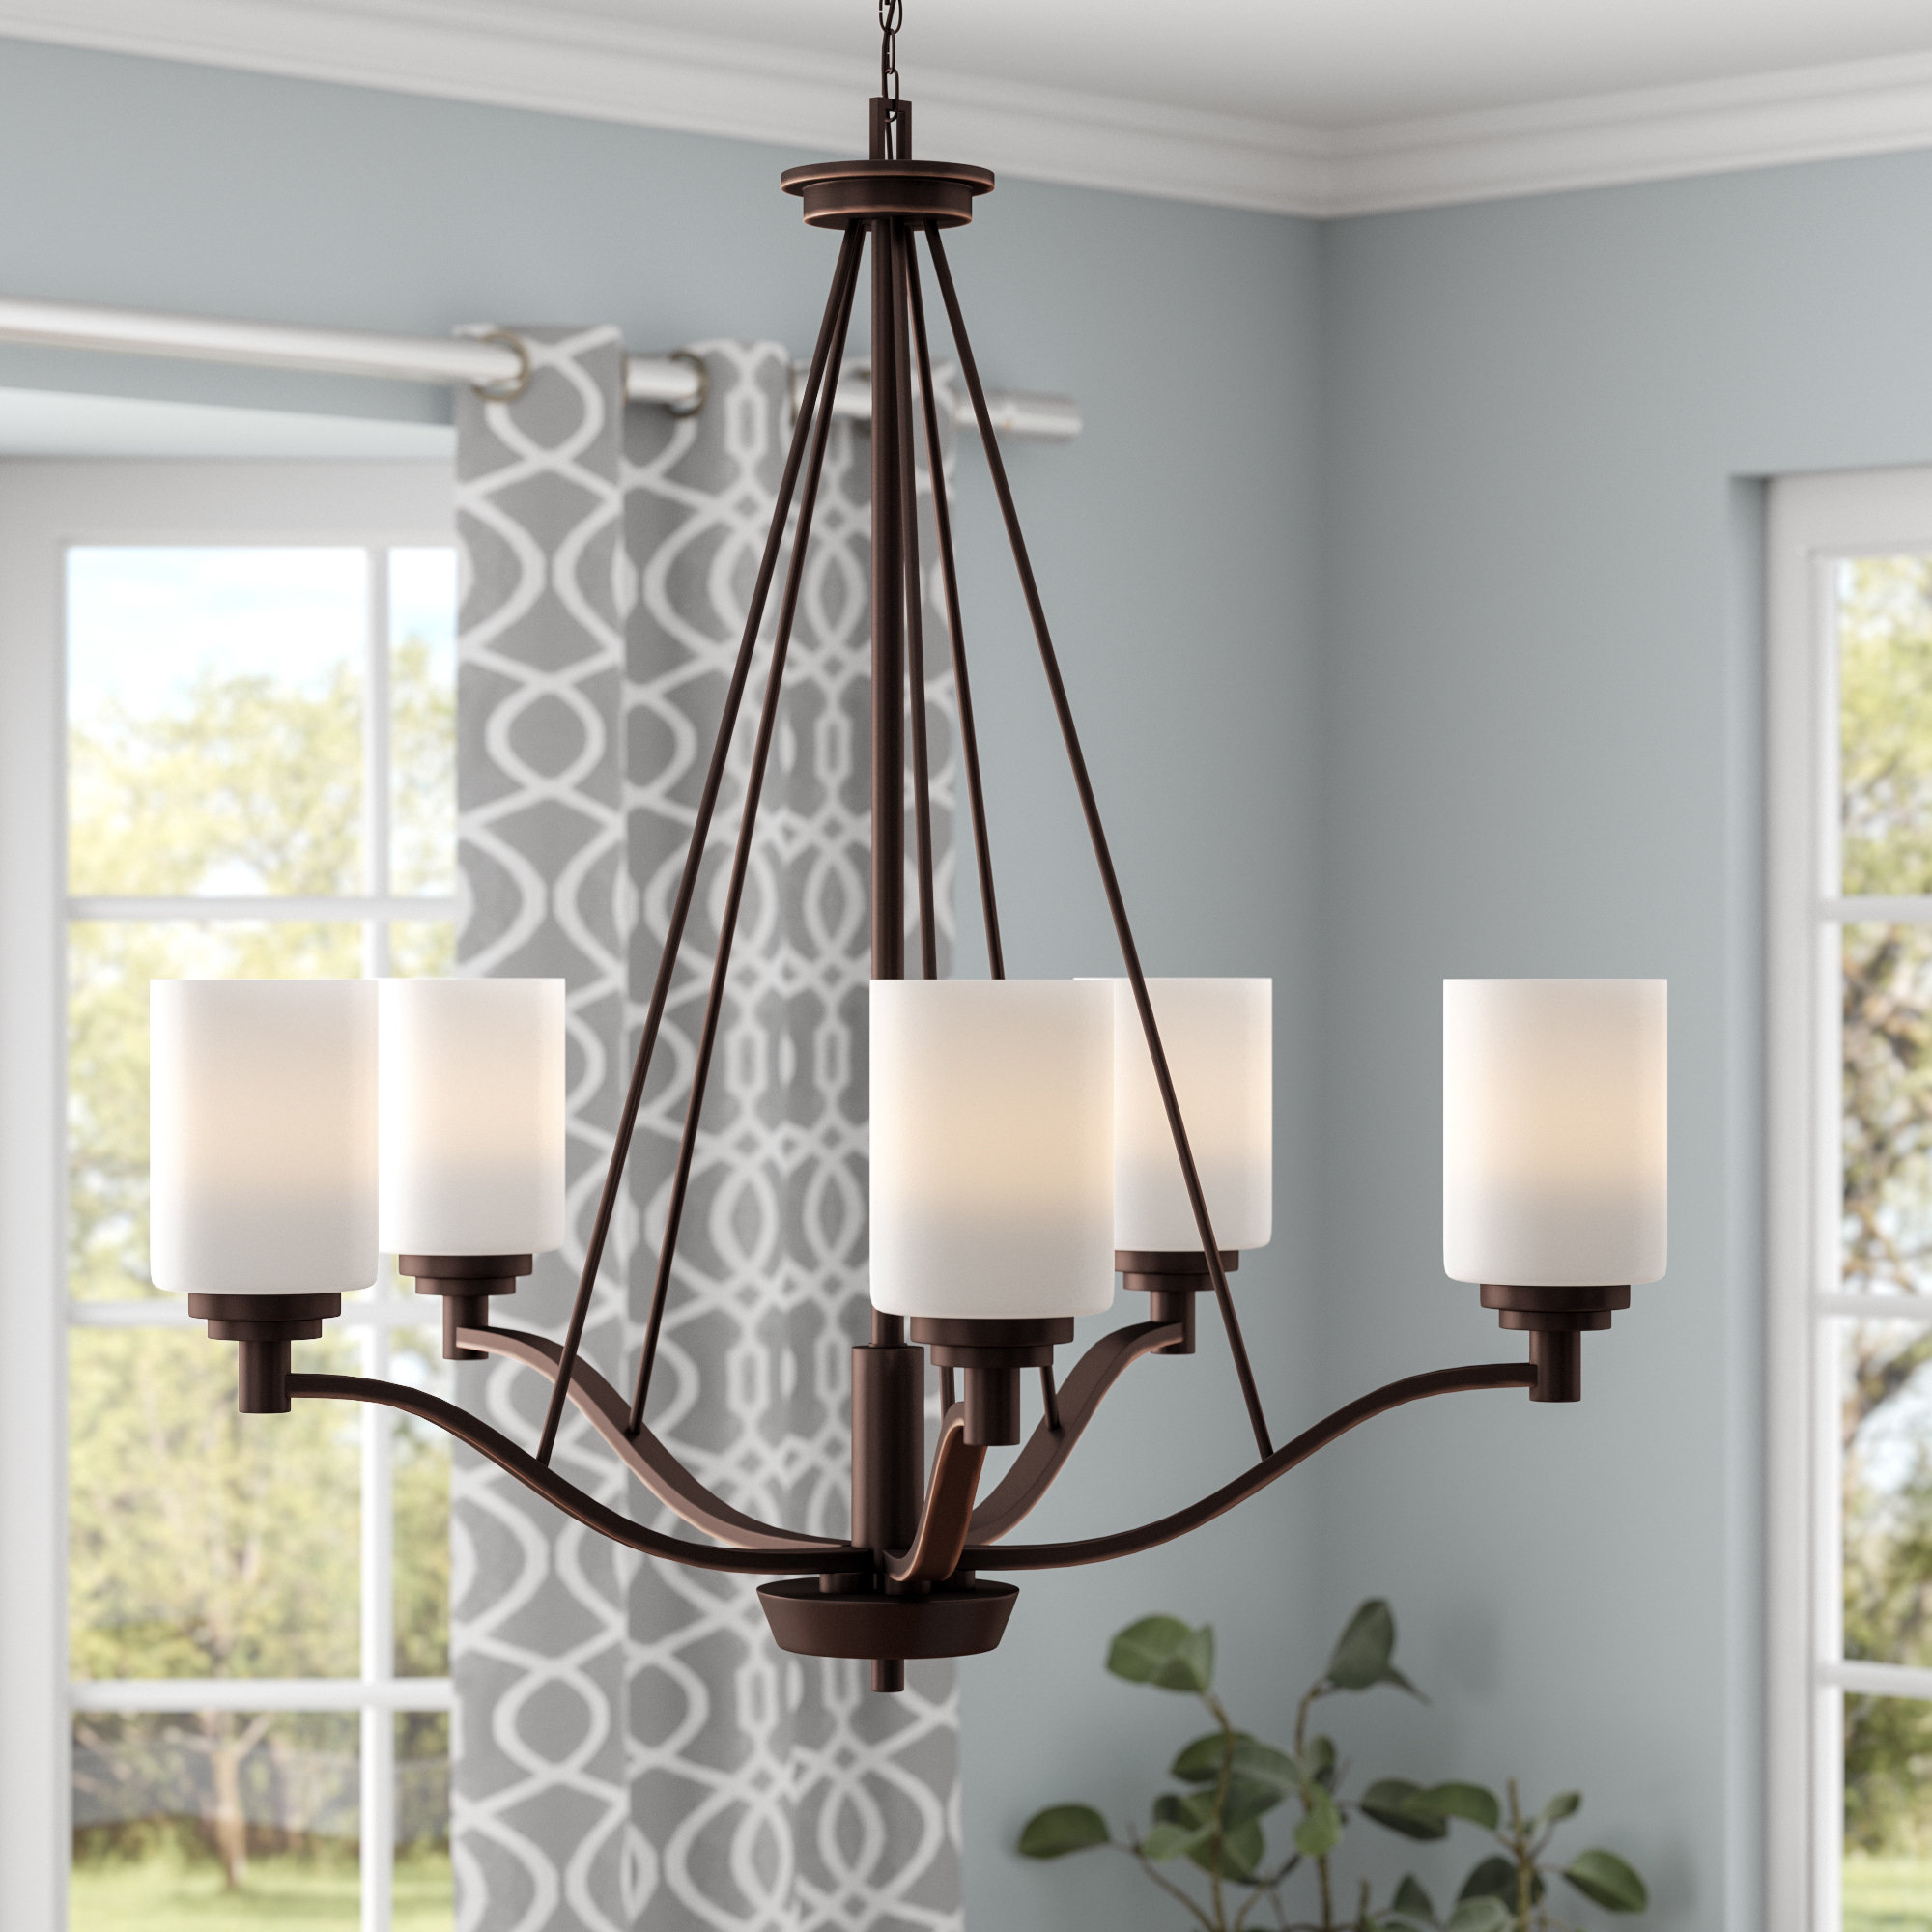 Most Recently Released Hester 5 Light Shaded Chandelier Pertaining To Suki 5 Light Shaded Chandeliers (View 20 of 20)